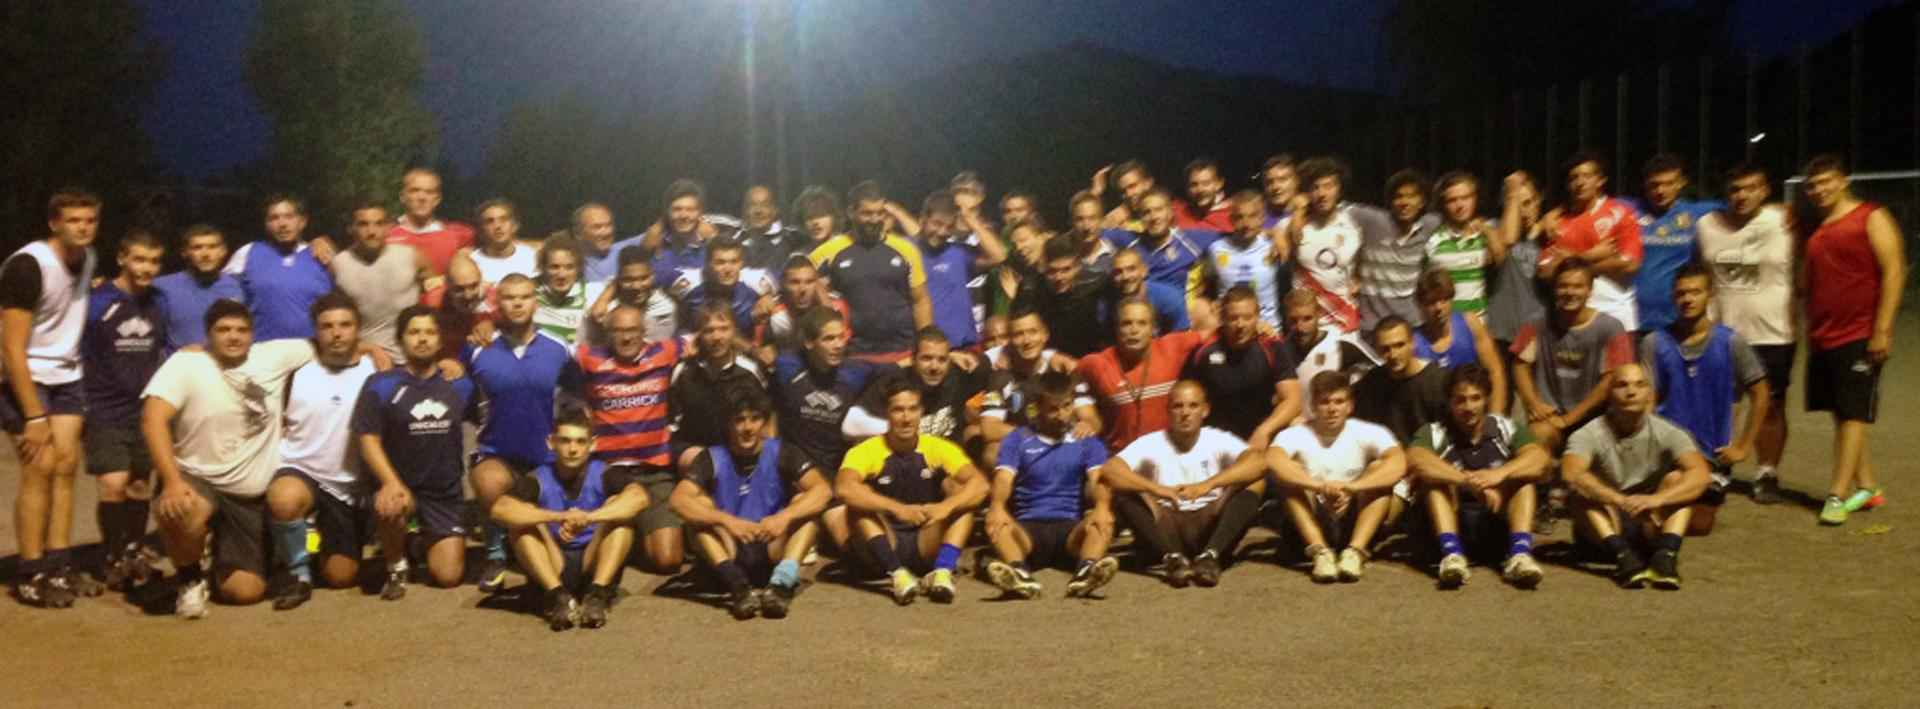 rugby lecco 2014 2015 (1)